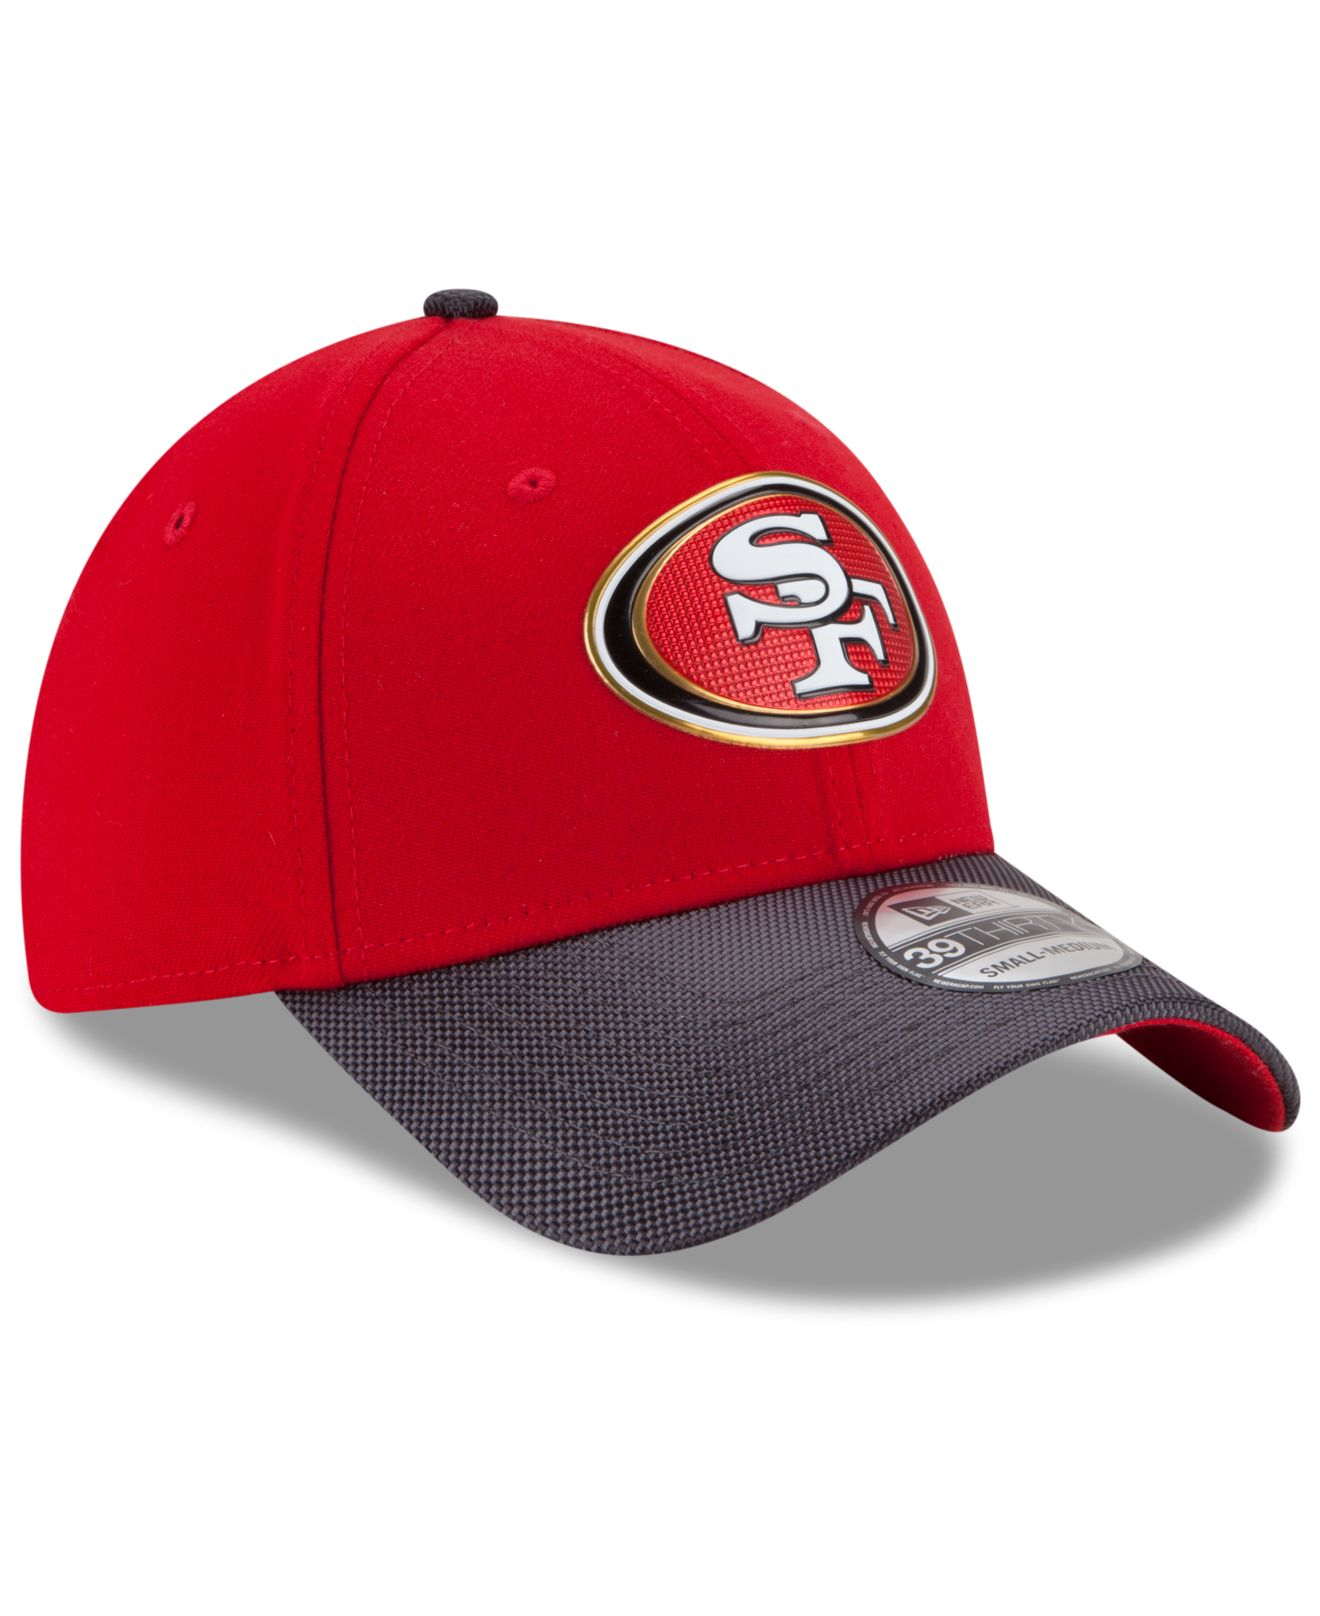 info for 1b943 2cdfc KTZ San Francisco 49ers Gold Collection On-field 39thirty Cap in Red ...